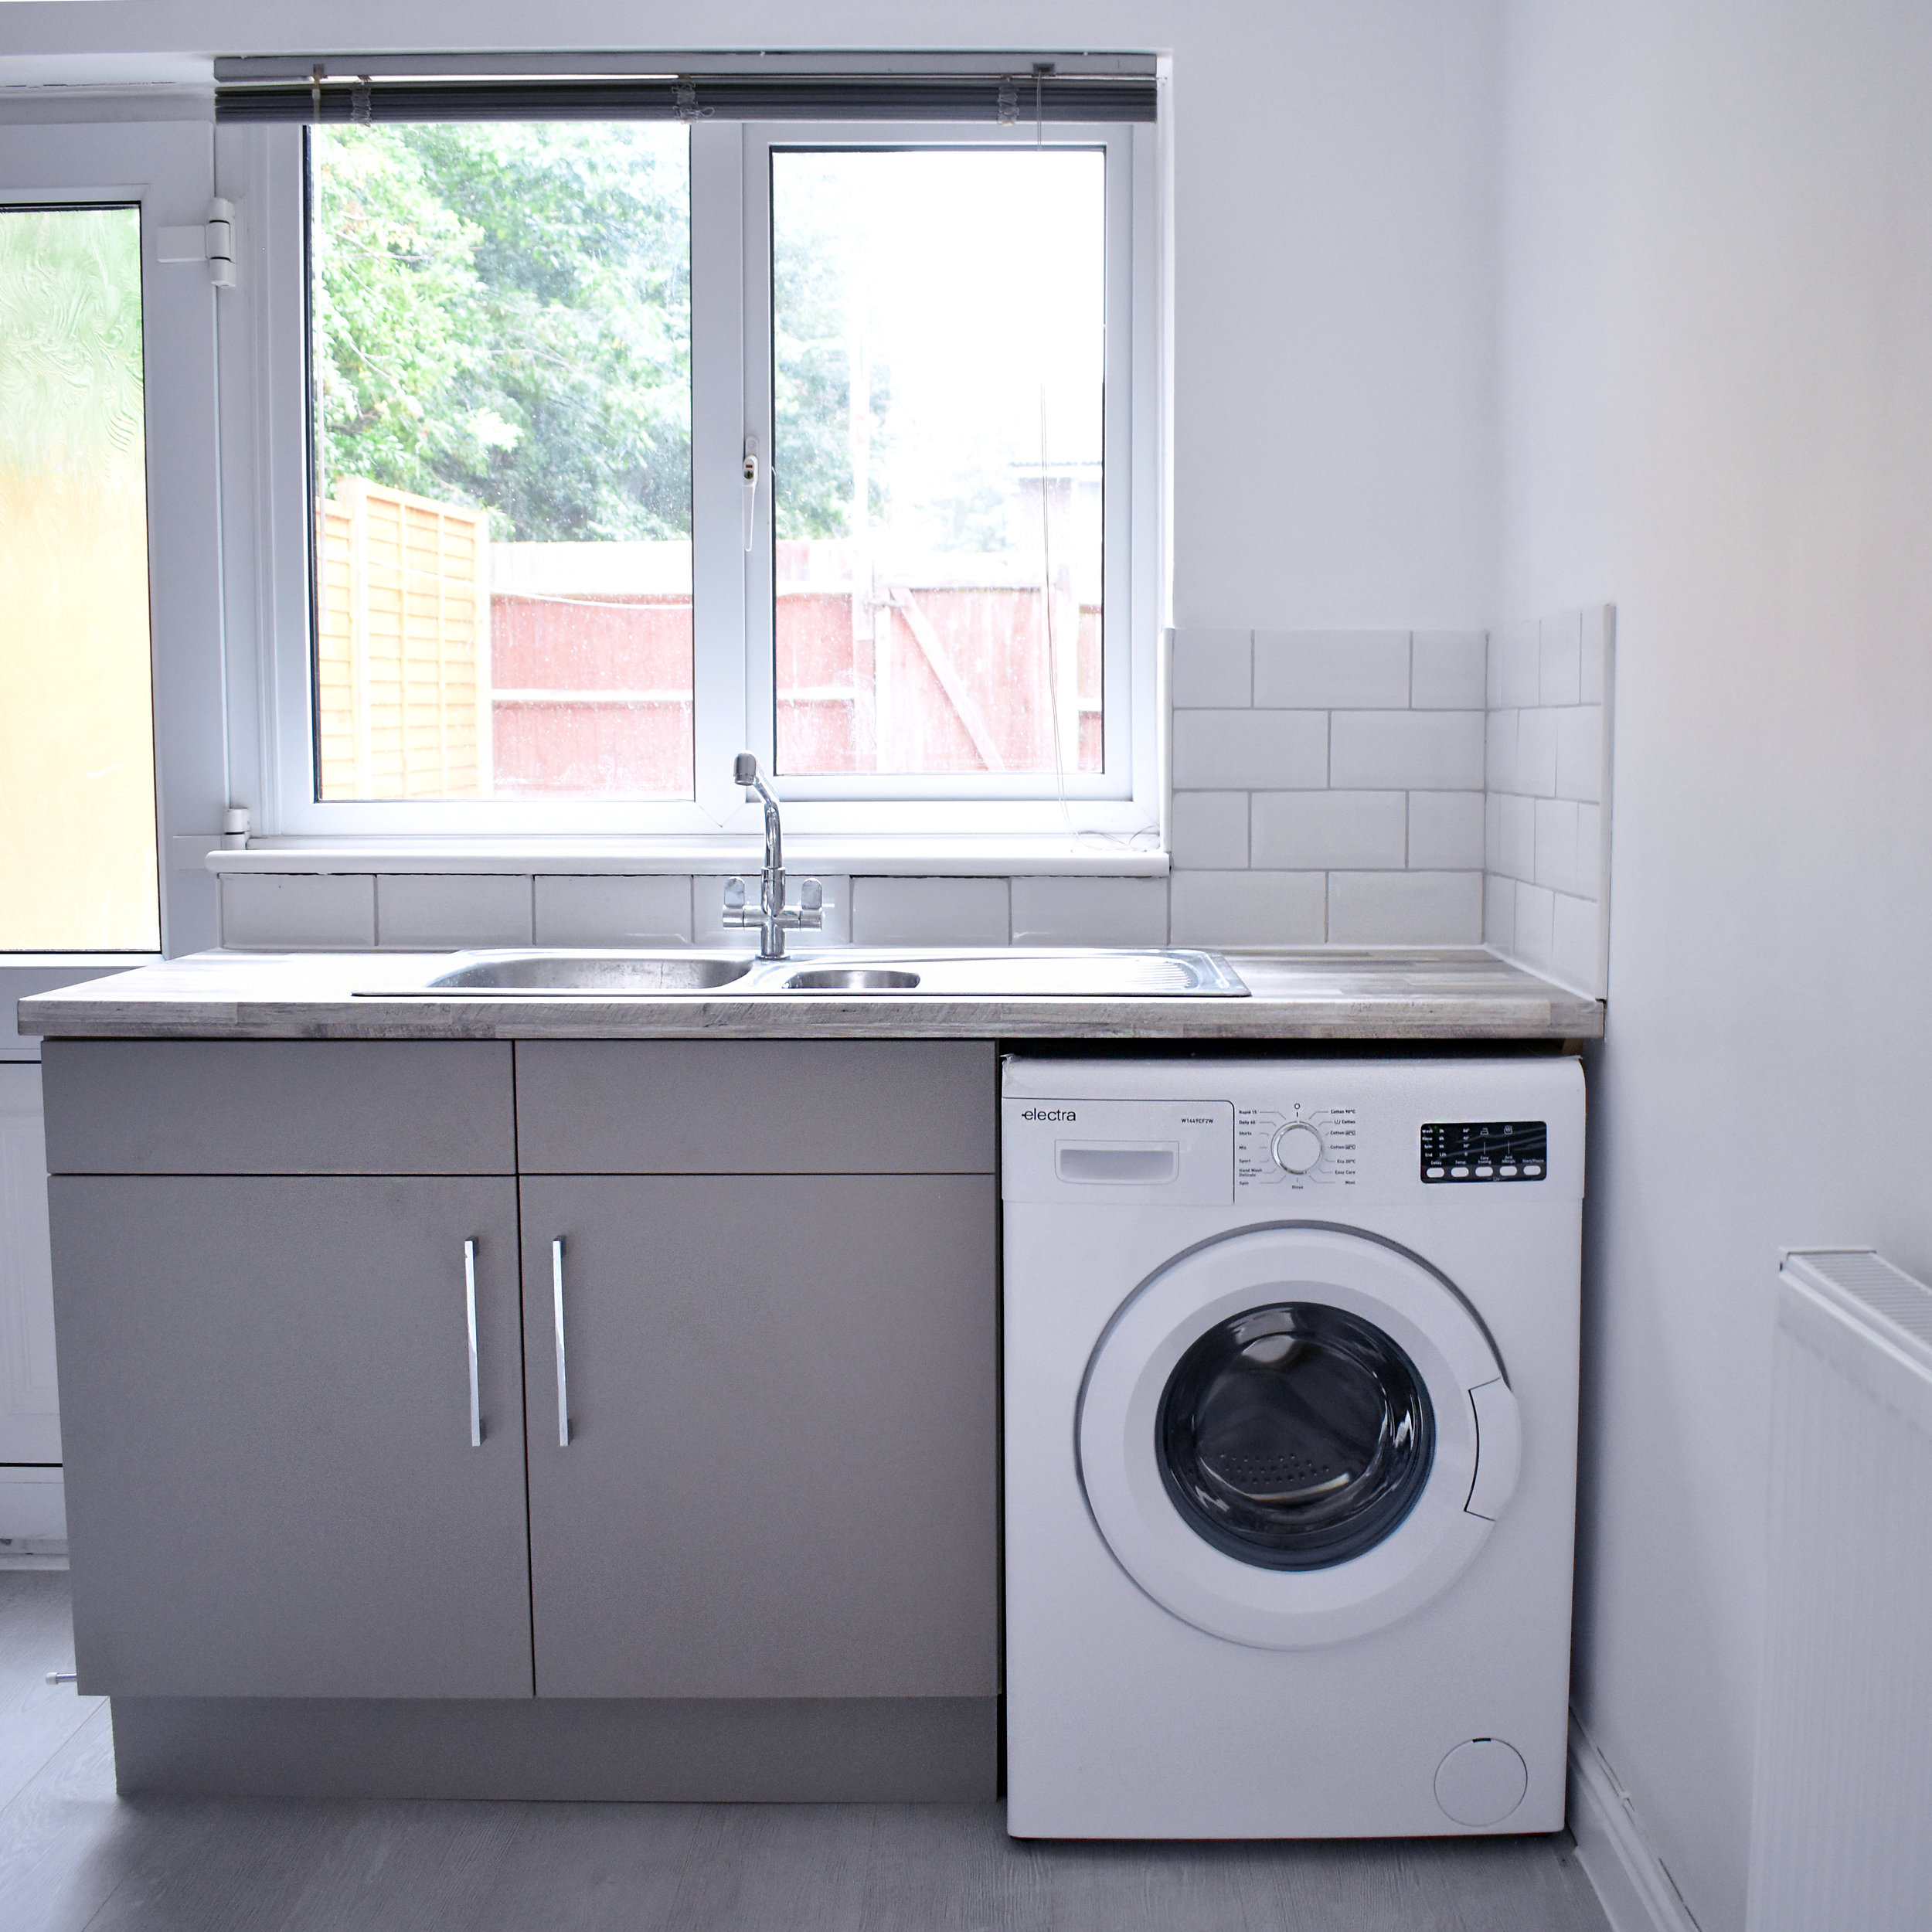 We chose white metro tiles from B&Q to keep the kitchen bright and airy.